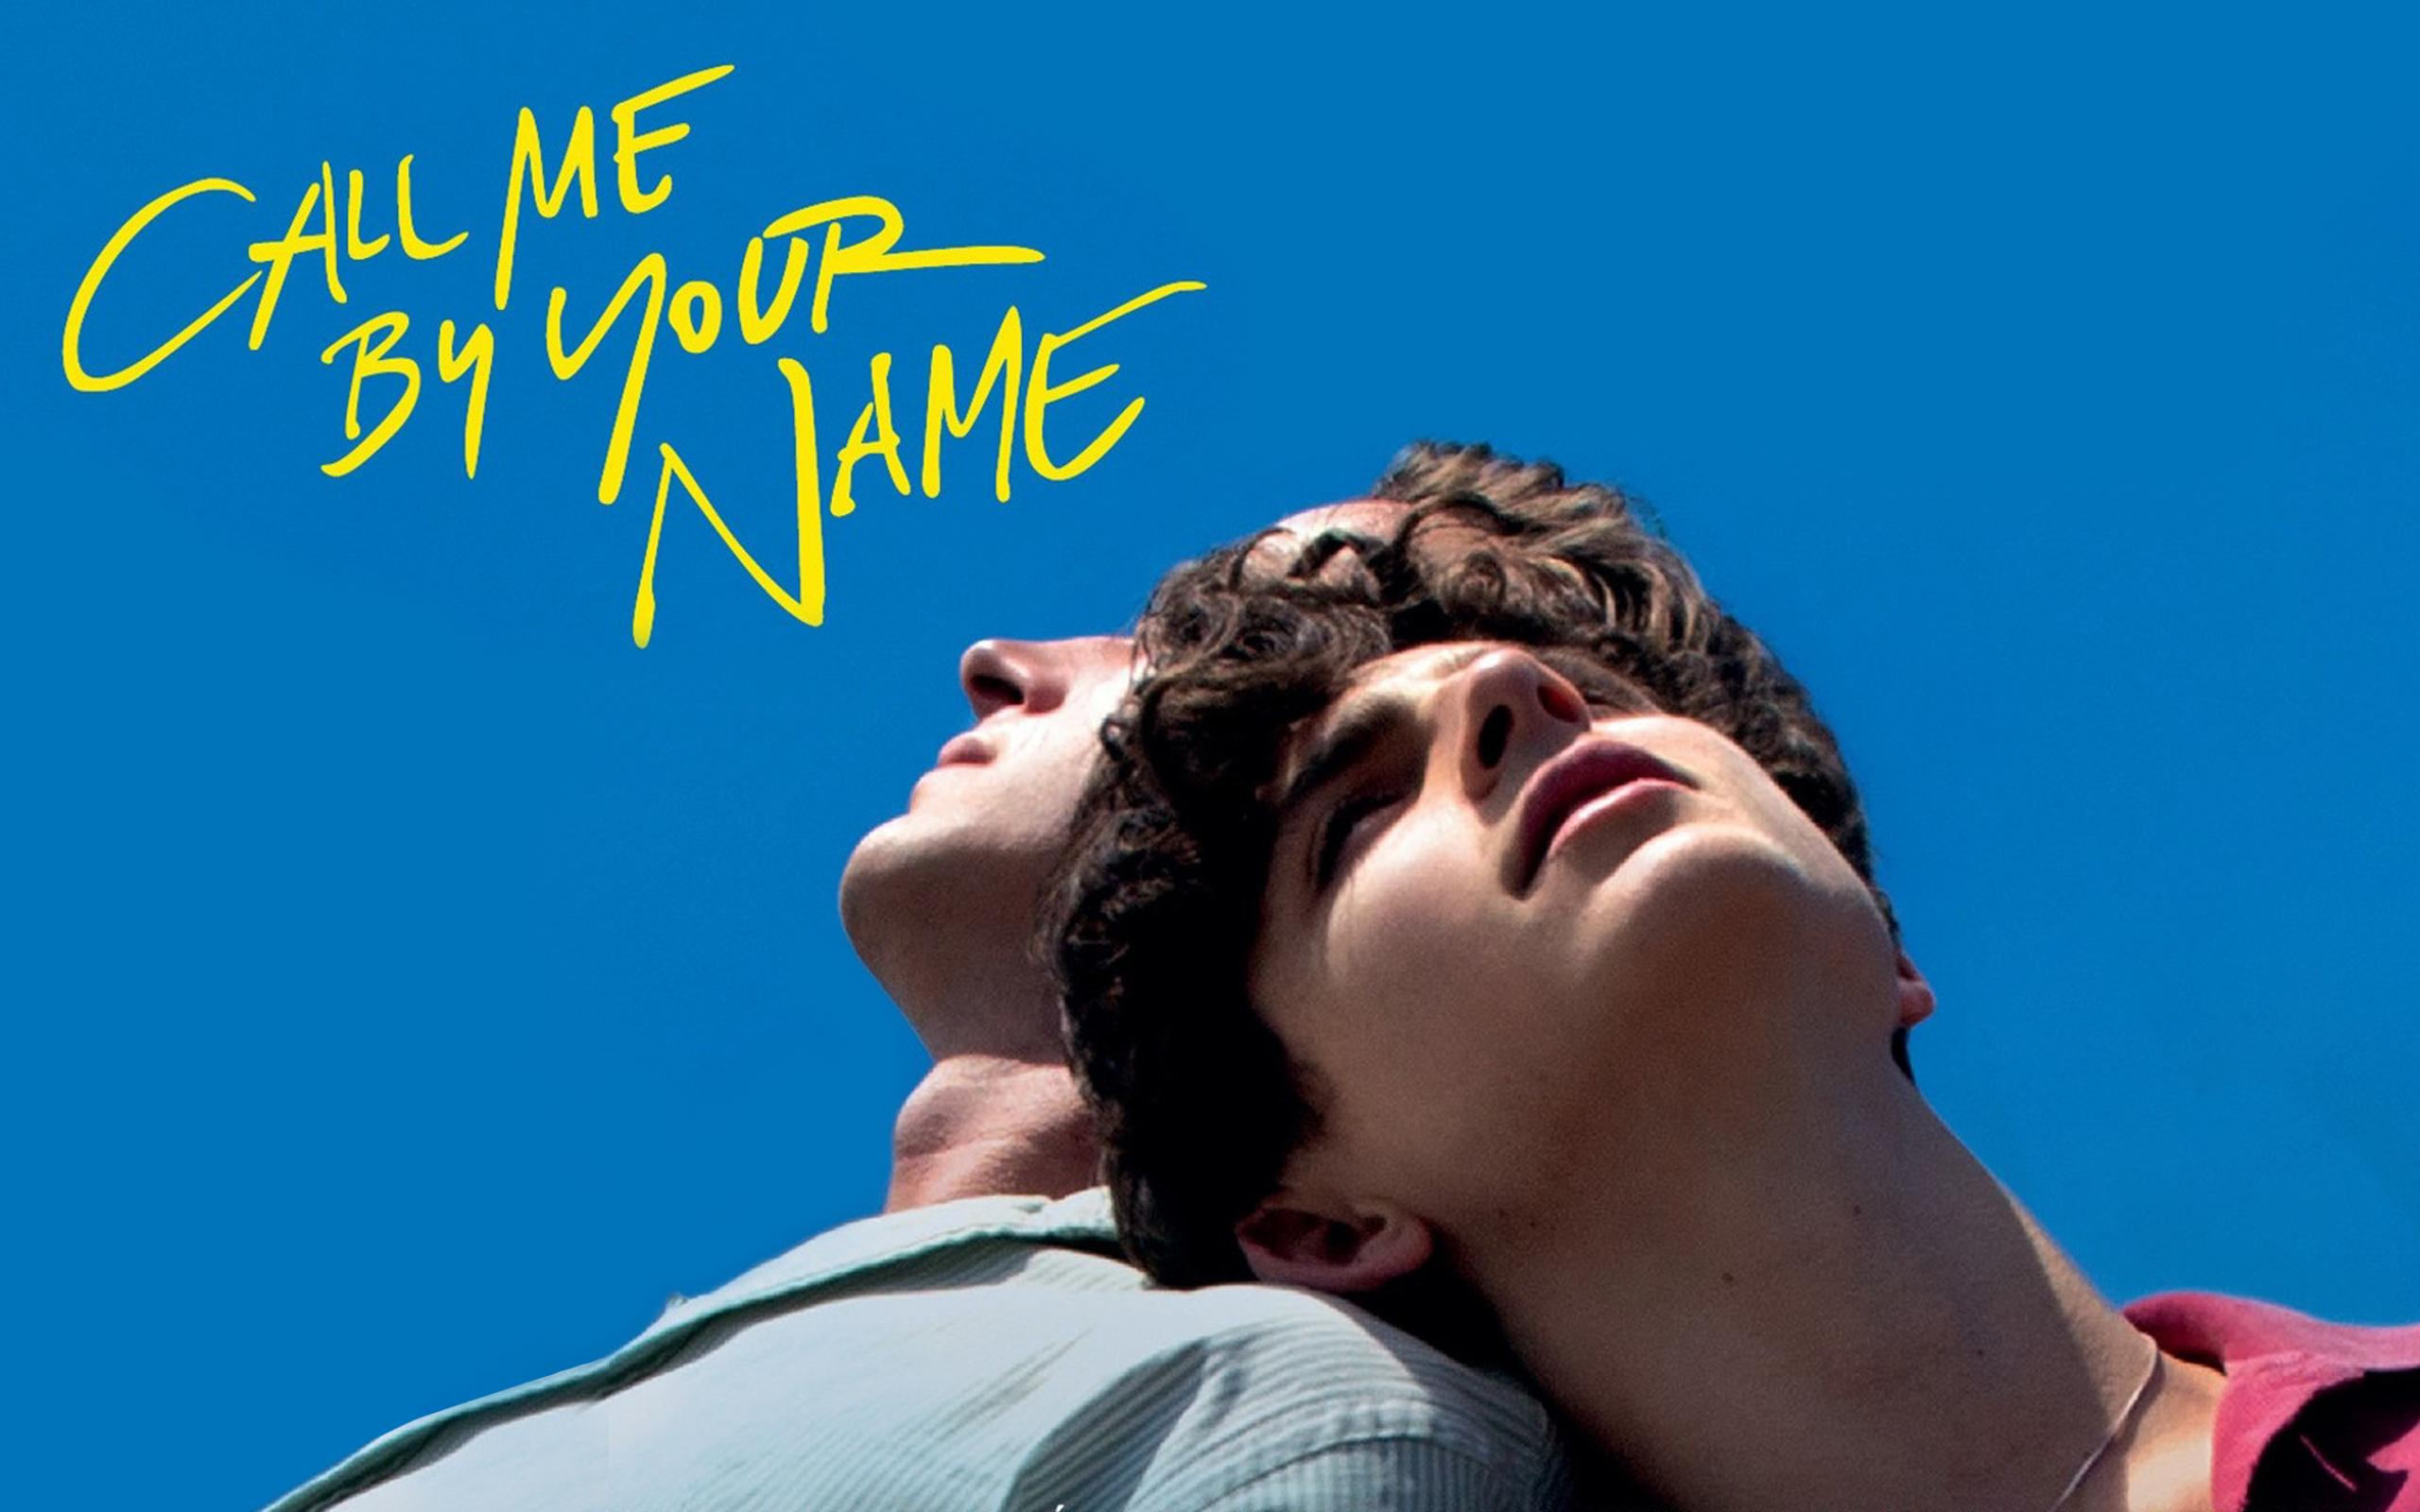 Call Me By Your Name Wallpapers Top Free Call Me By Your Name Backgrounds Wallpaperaccess